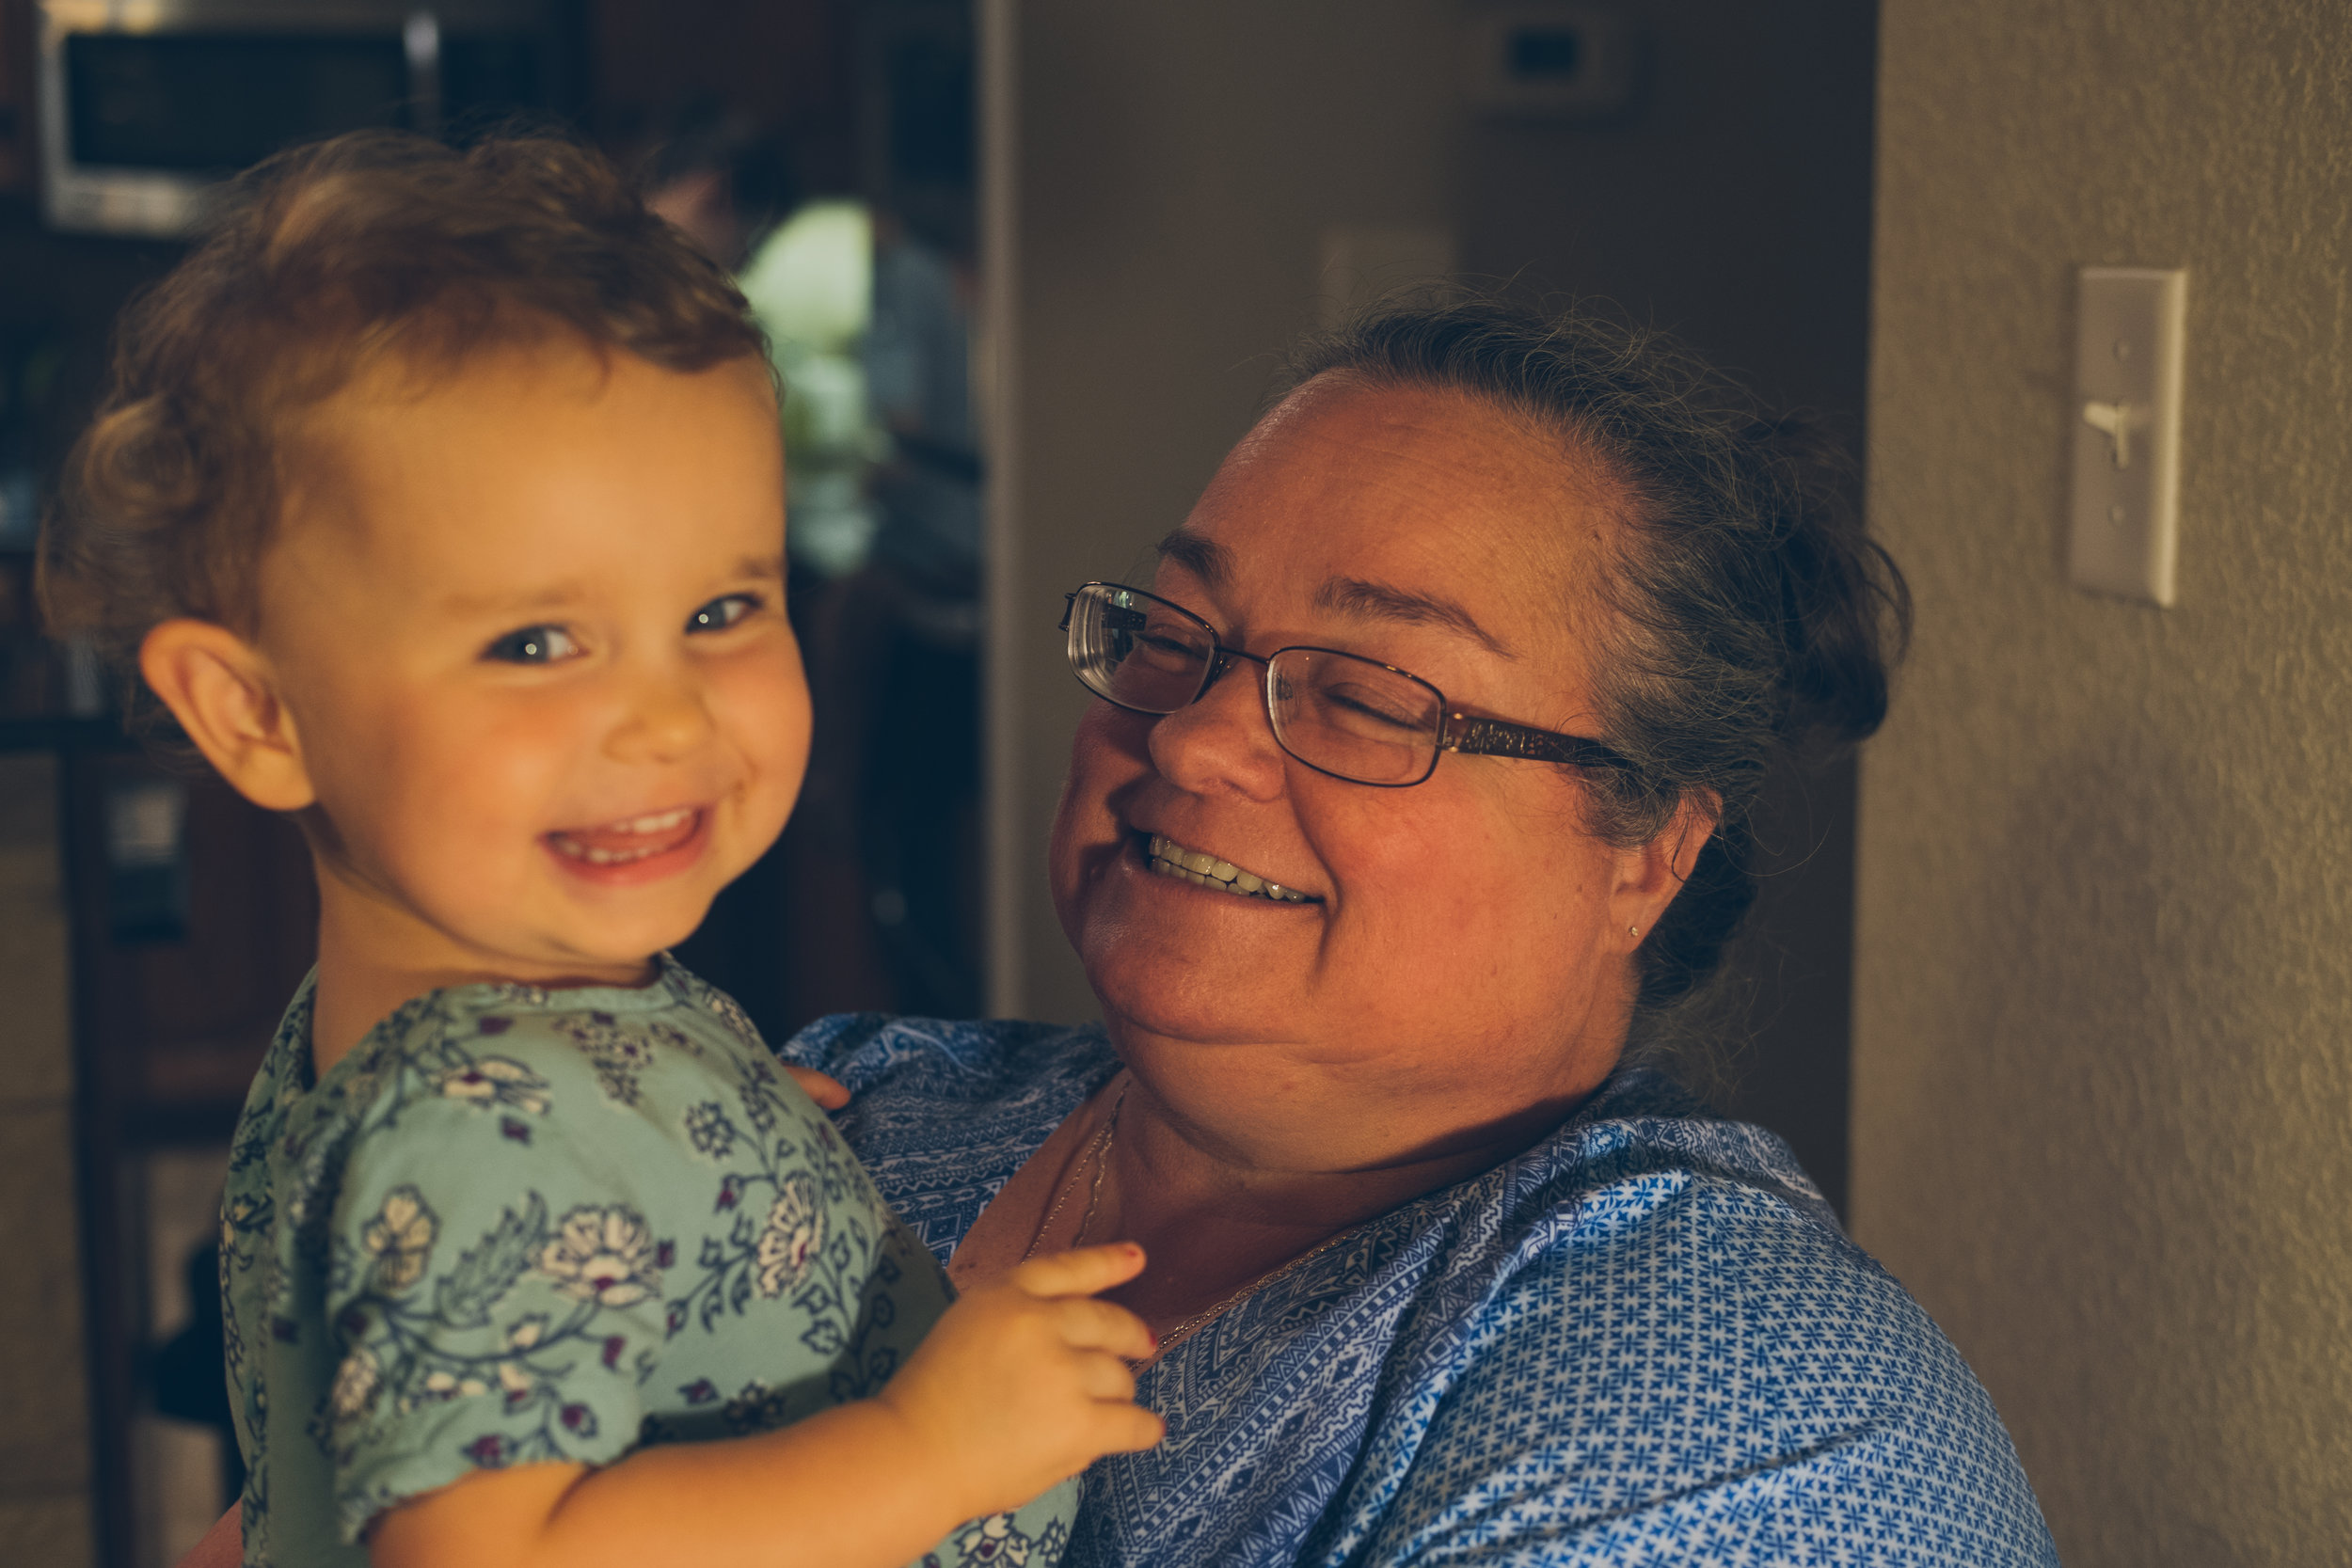 Woman with glasses holding small child smiling